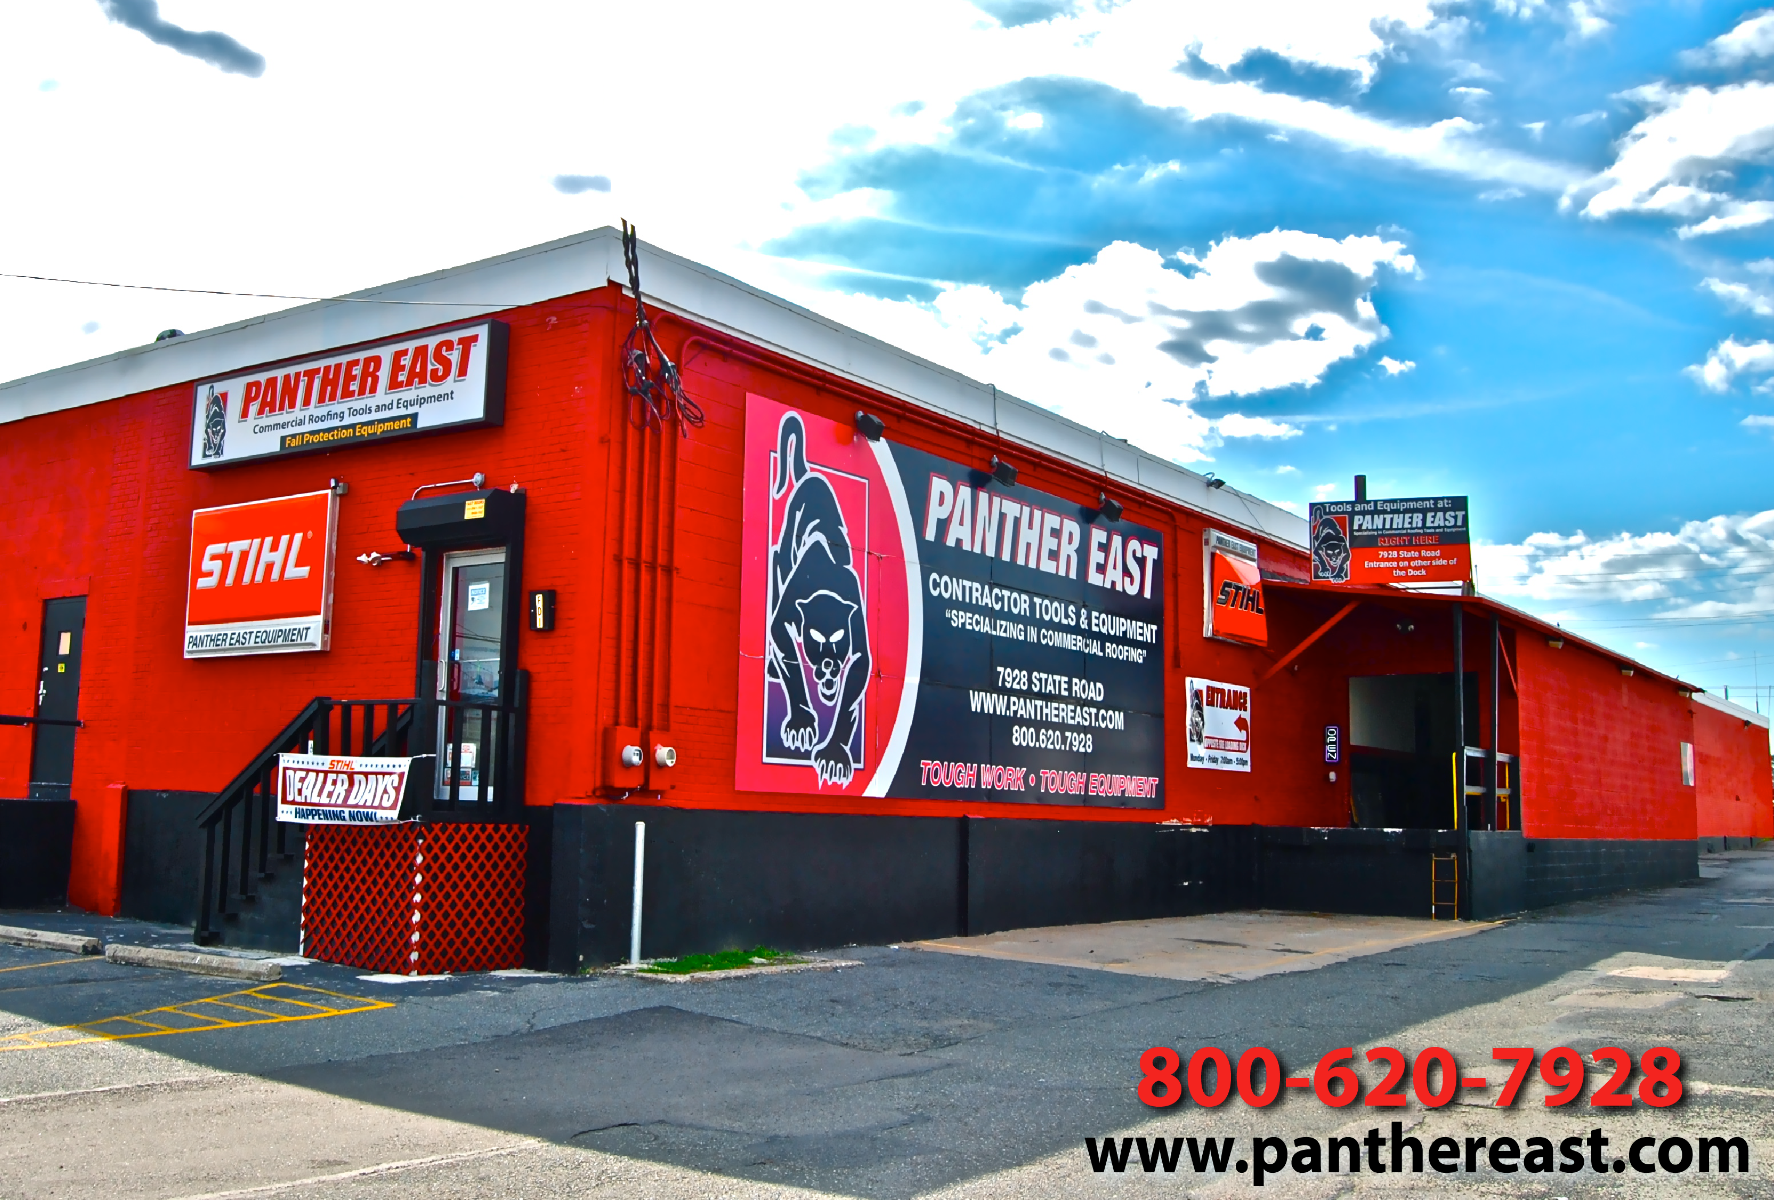 Panther_East_Black-Cat-Fasteners_Outside-Stret-View_Shop_Center_Warehouse_Headquarters_Campus_Authorized_Dealer_Service_Repair_Center_Rent_or_buy_tools_equipment